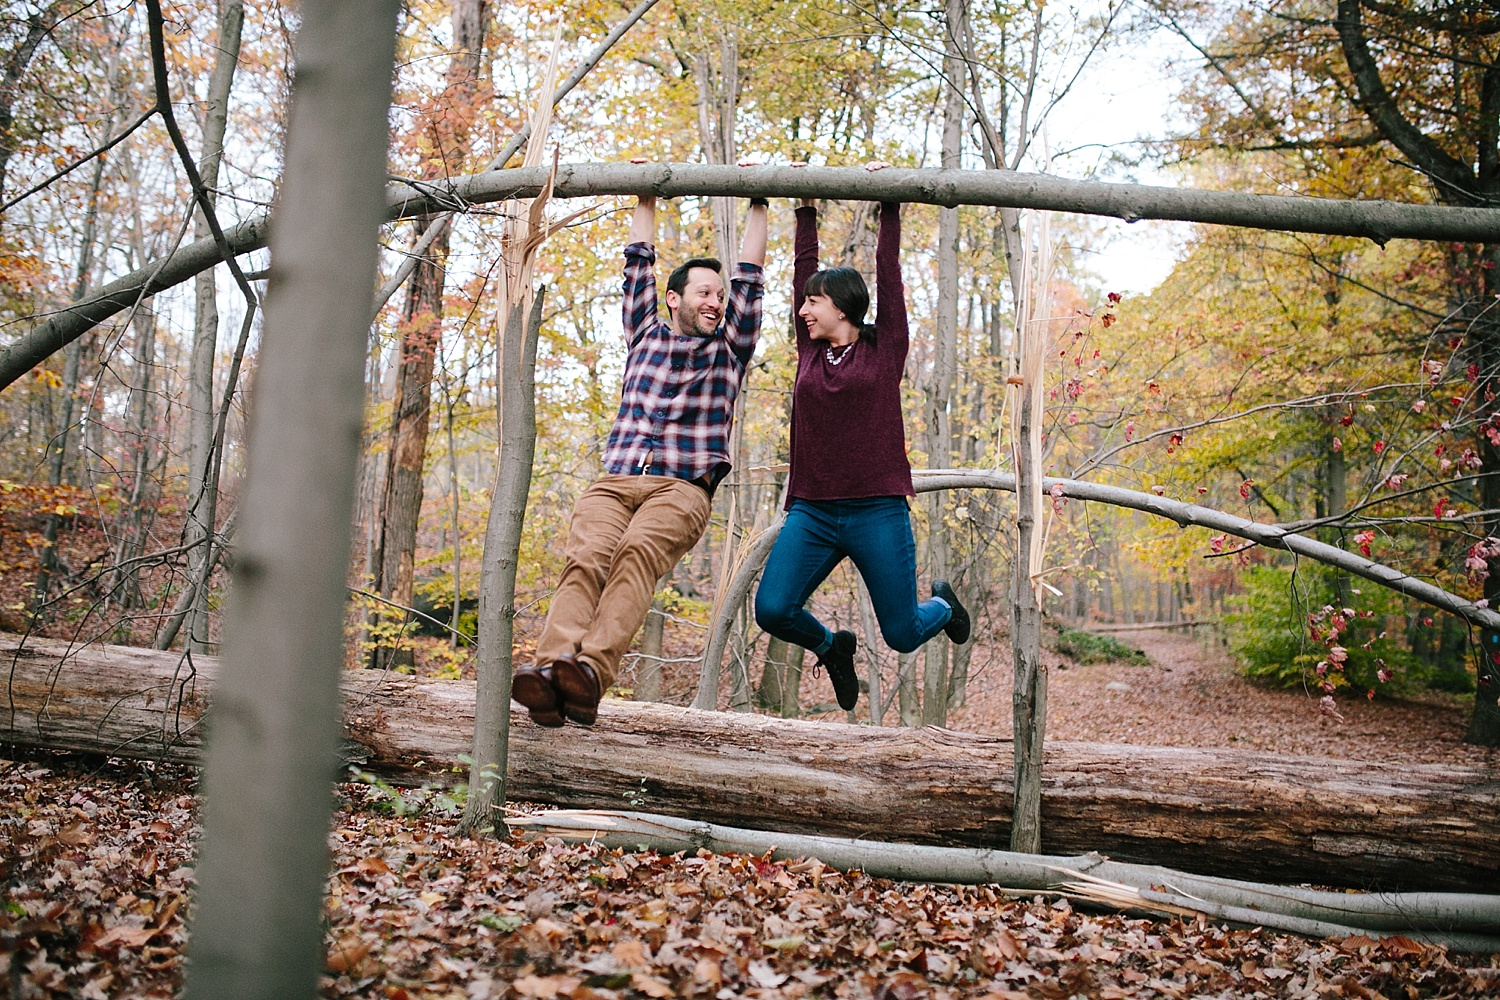 michelleanddaniel_eaglerockreservation_engagement_image025.jpg